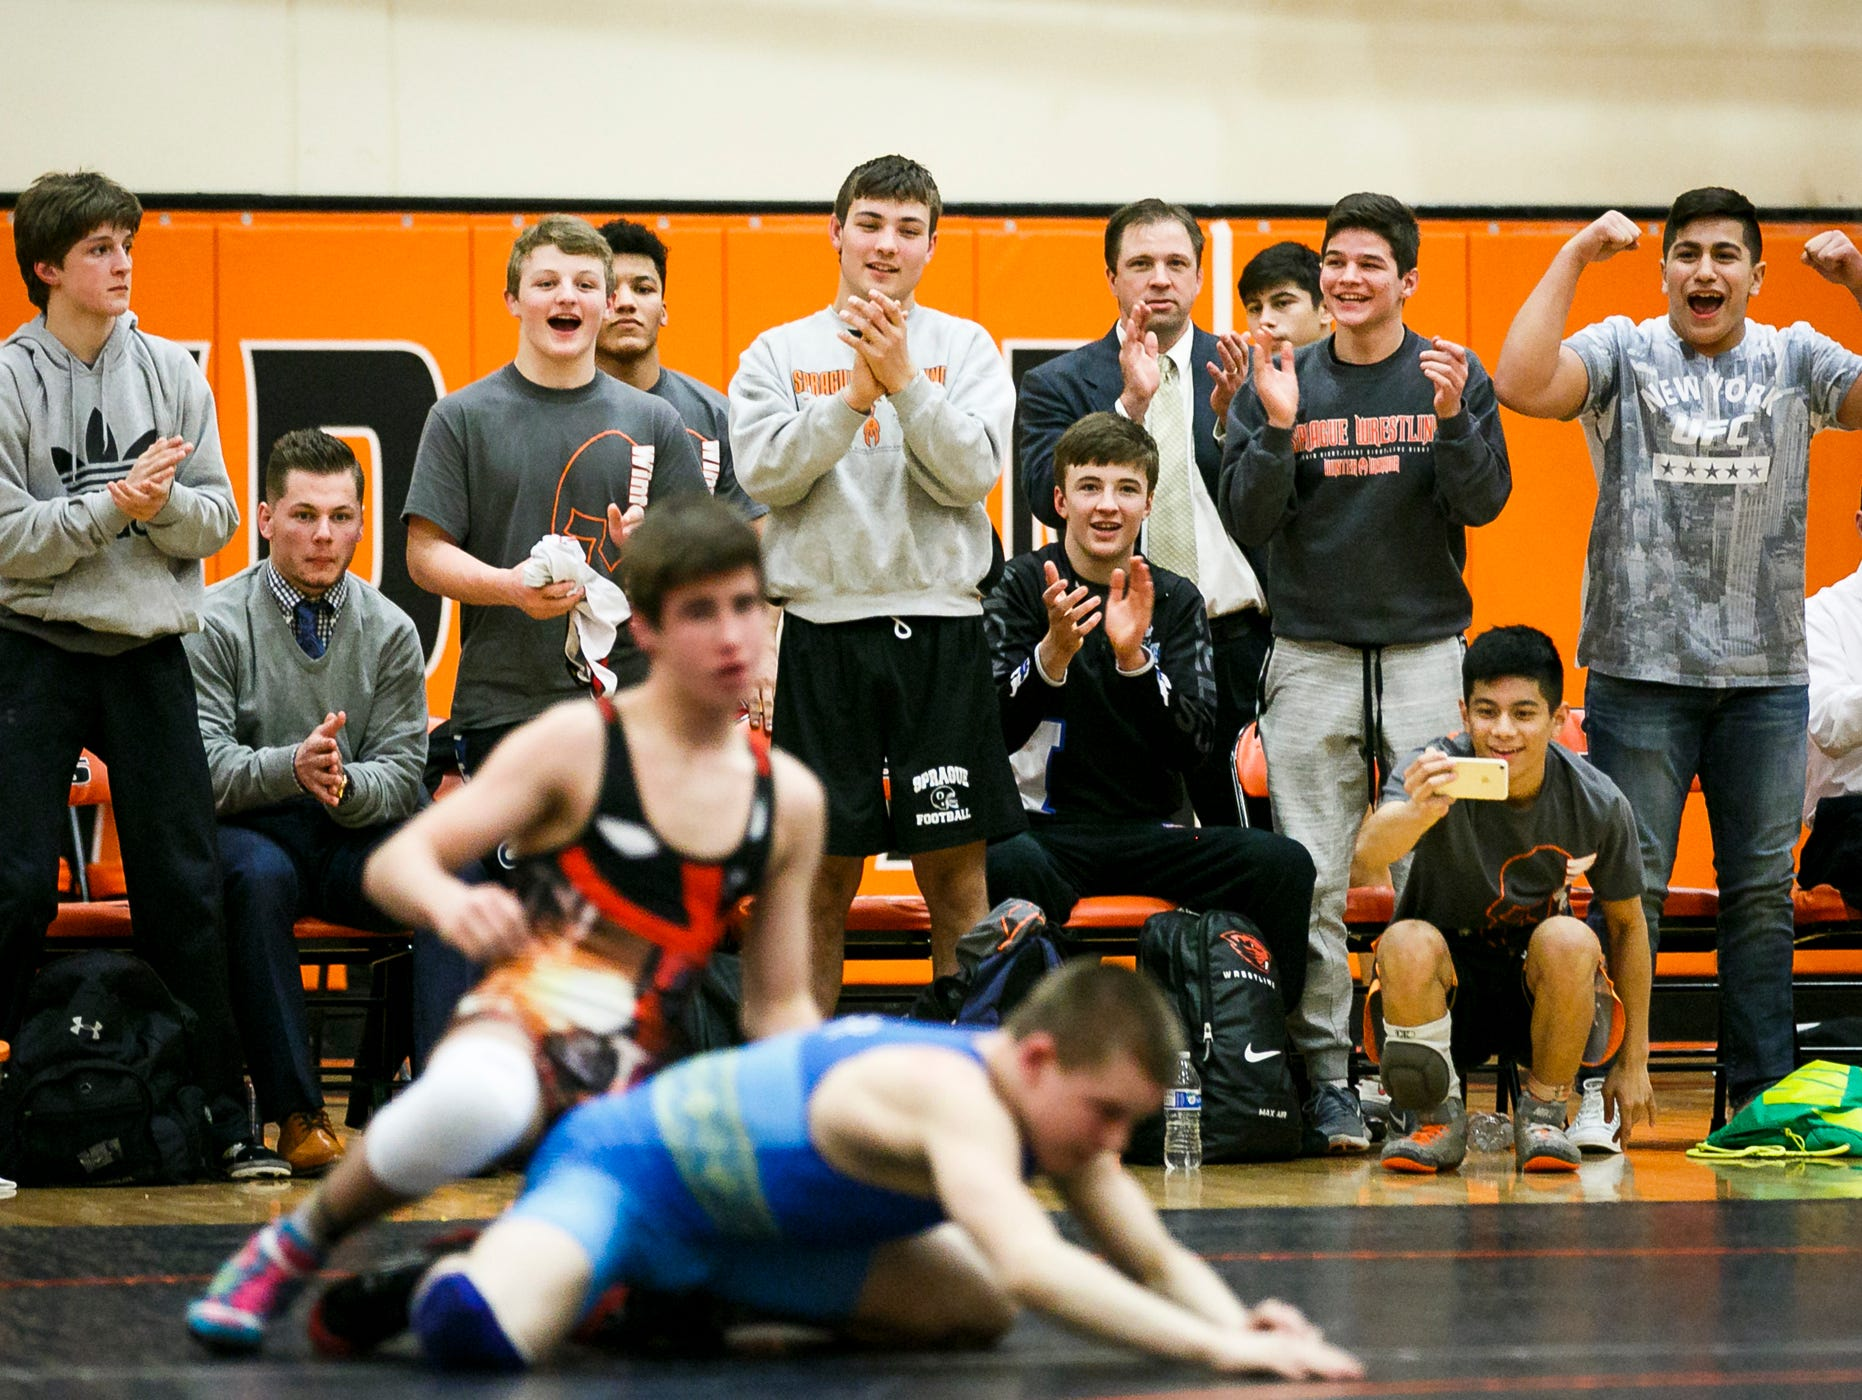 Salem Area All-Star wrestlers cheer as Silverton's Kaden Kuenzi wins a match against Oleh Haider from Ukraine at Sprague High School on Tuesday, March 8, 2017. Kuenzi was the only Salem all-star athlete to win their match against the Ukrainian team; he said his previous experience with freestyle wrestling helped him in the match up.